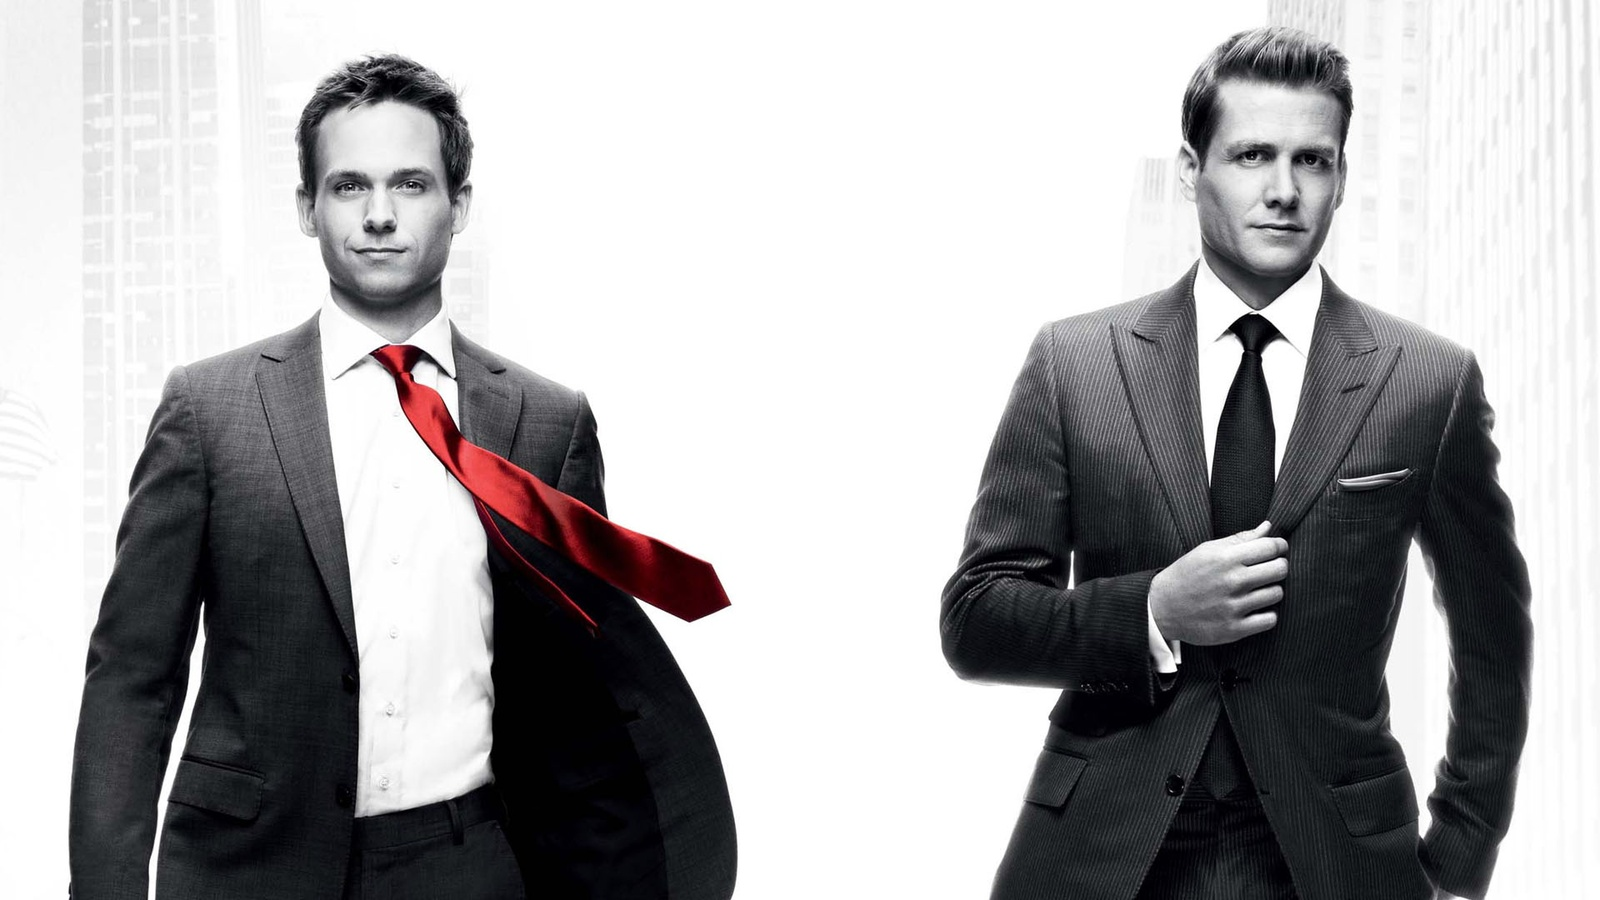 Форс-мажоры/Suits background